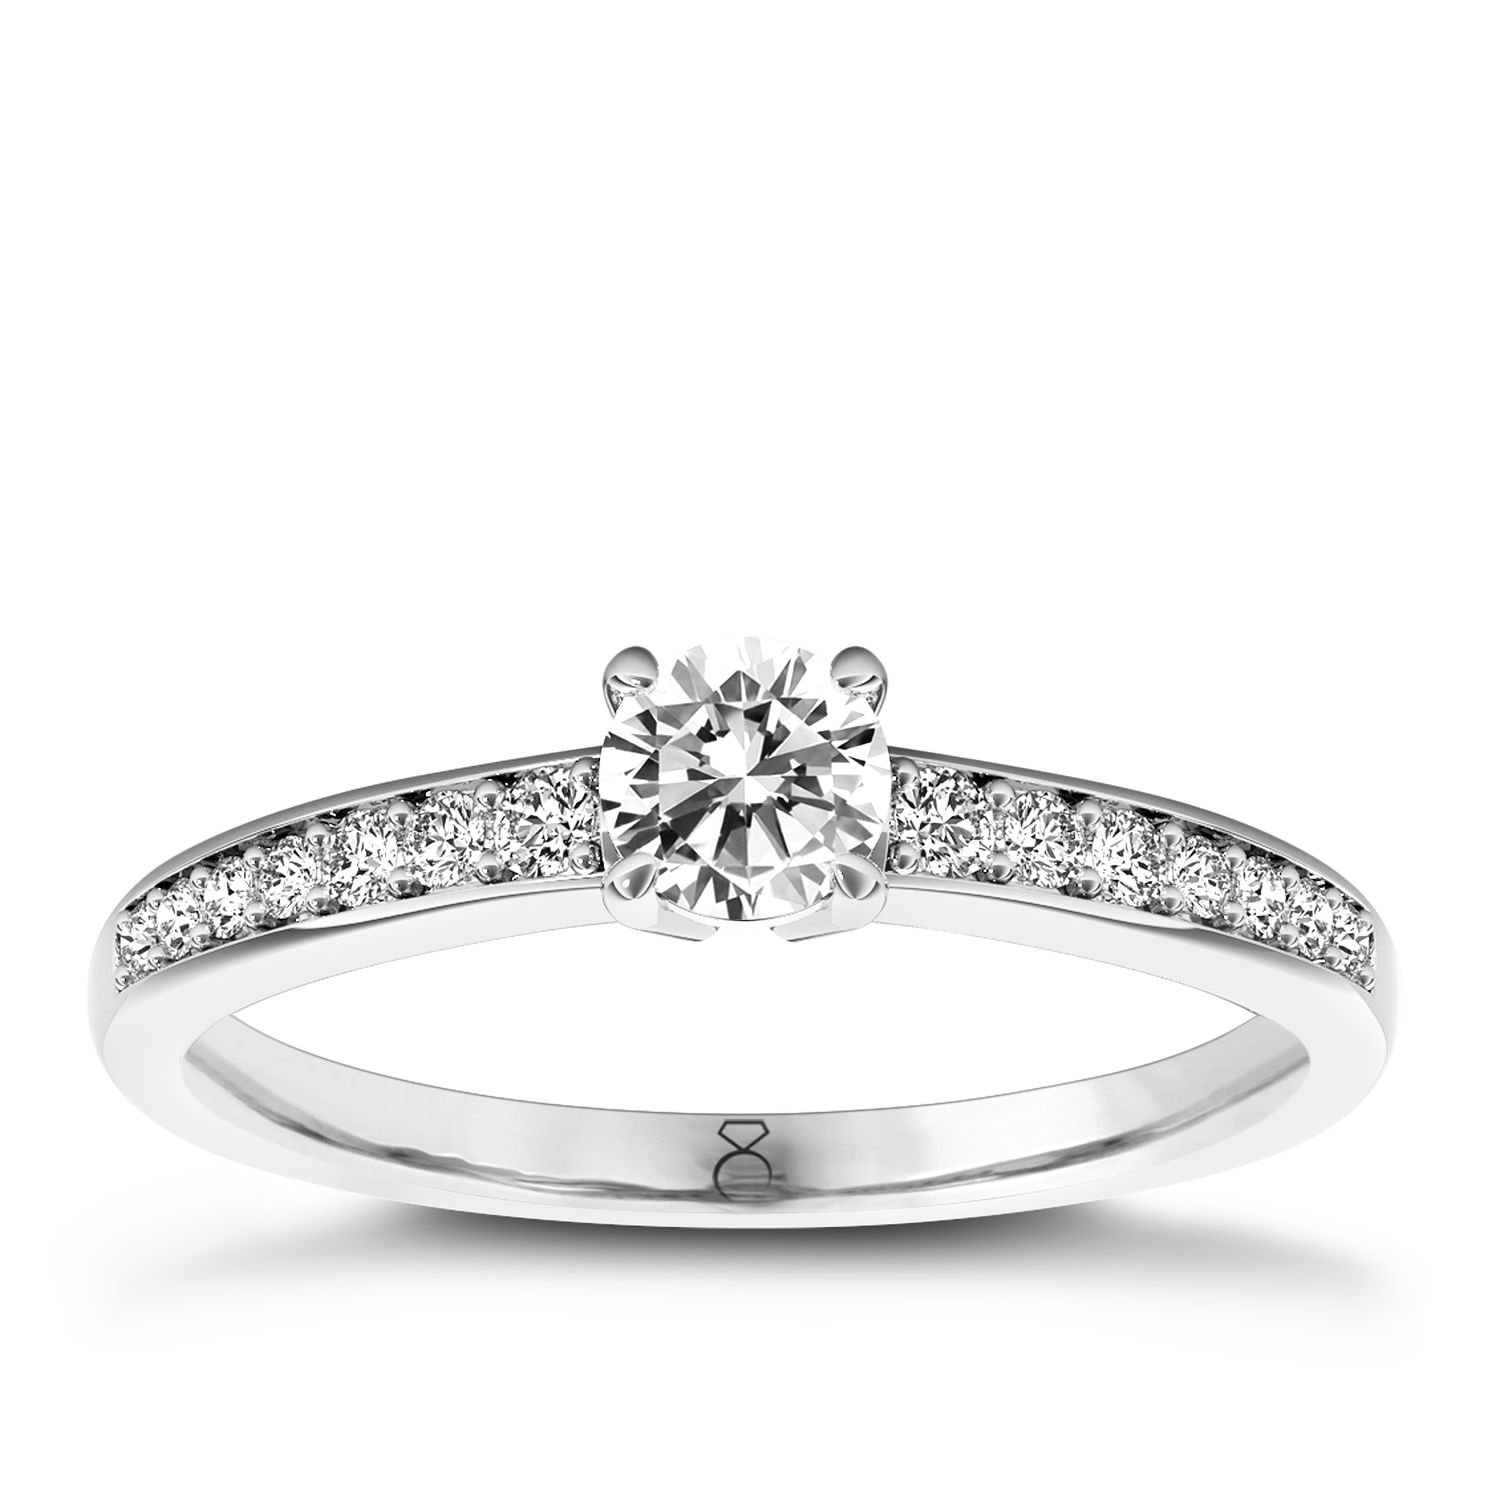 The Diamond Story 18ct White Gold 2/3ct Diamond Ring - Product number 5414687